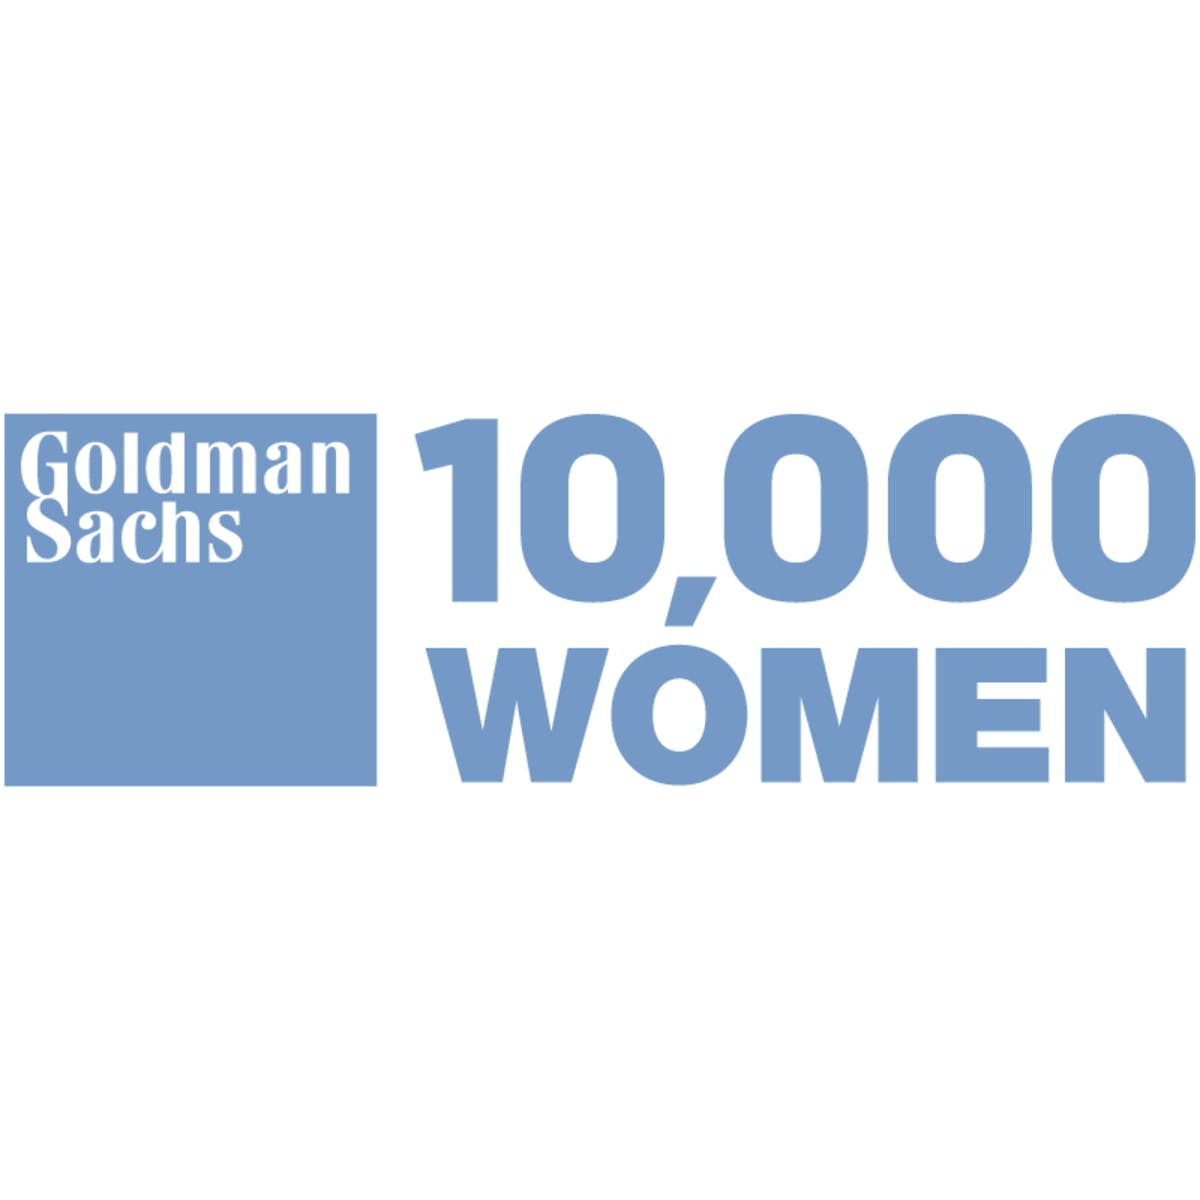 Grow Your Business with Goldman Sachs 10,000 Women